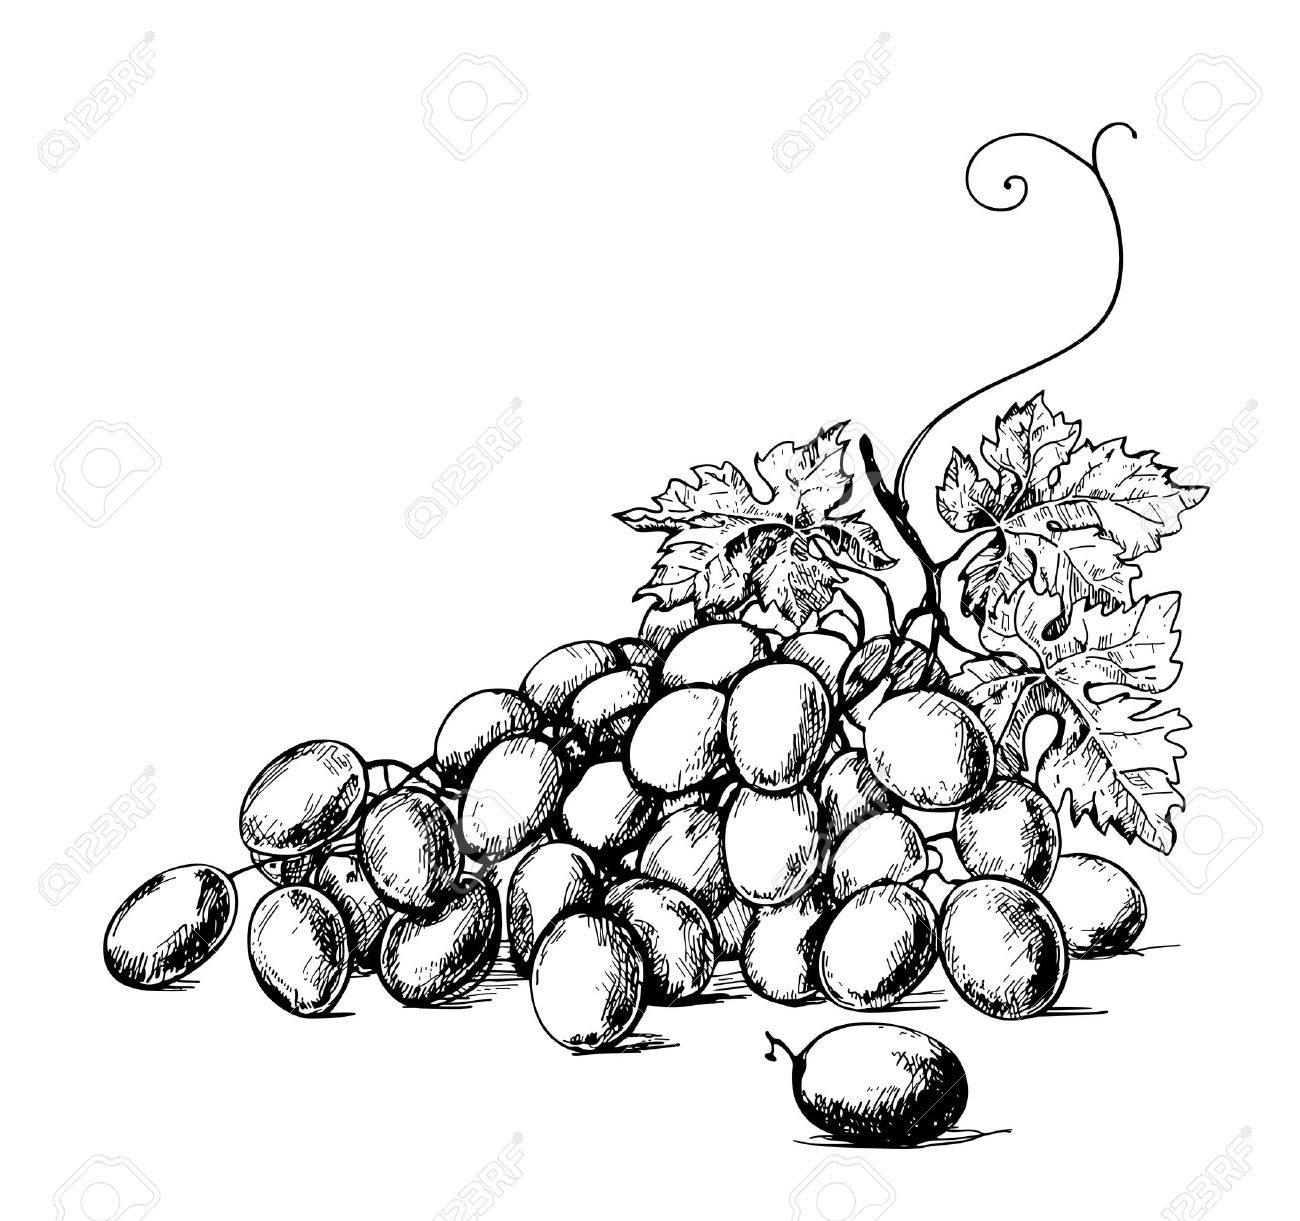 Grape Drawing at GetDrawings.com | Free for personal use Grape ...